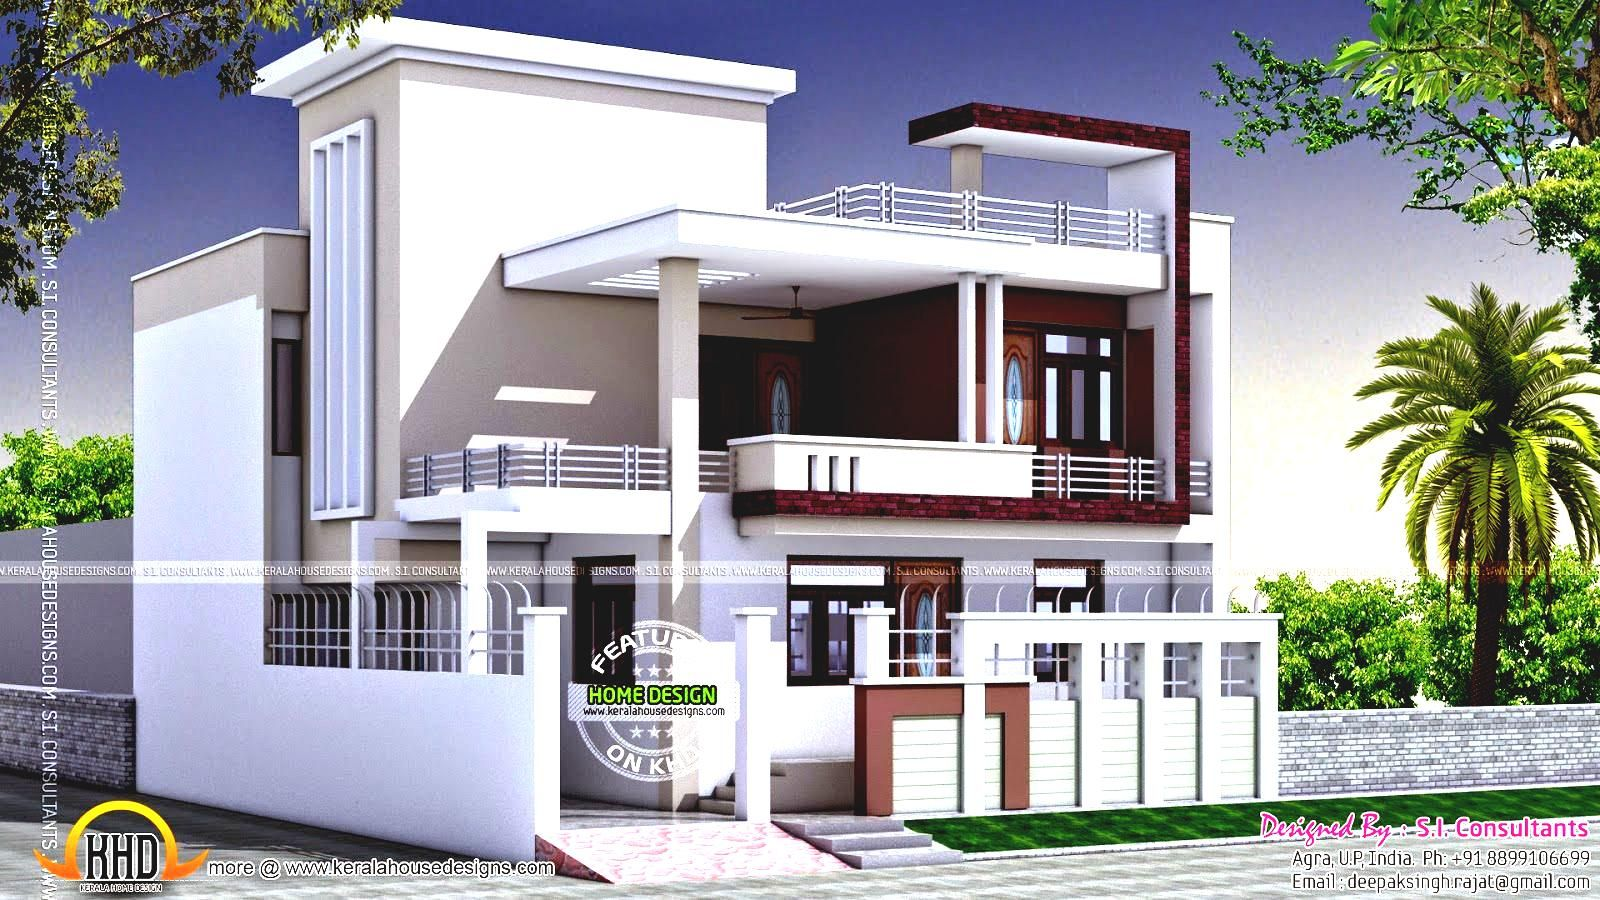 b11507aa5f96c58a8ab1805039cdf0a0 - 25+ Small House Design Front Look  Background